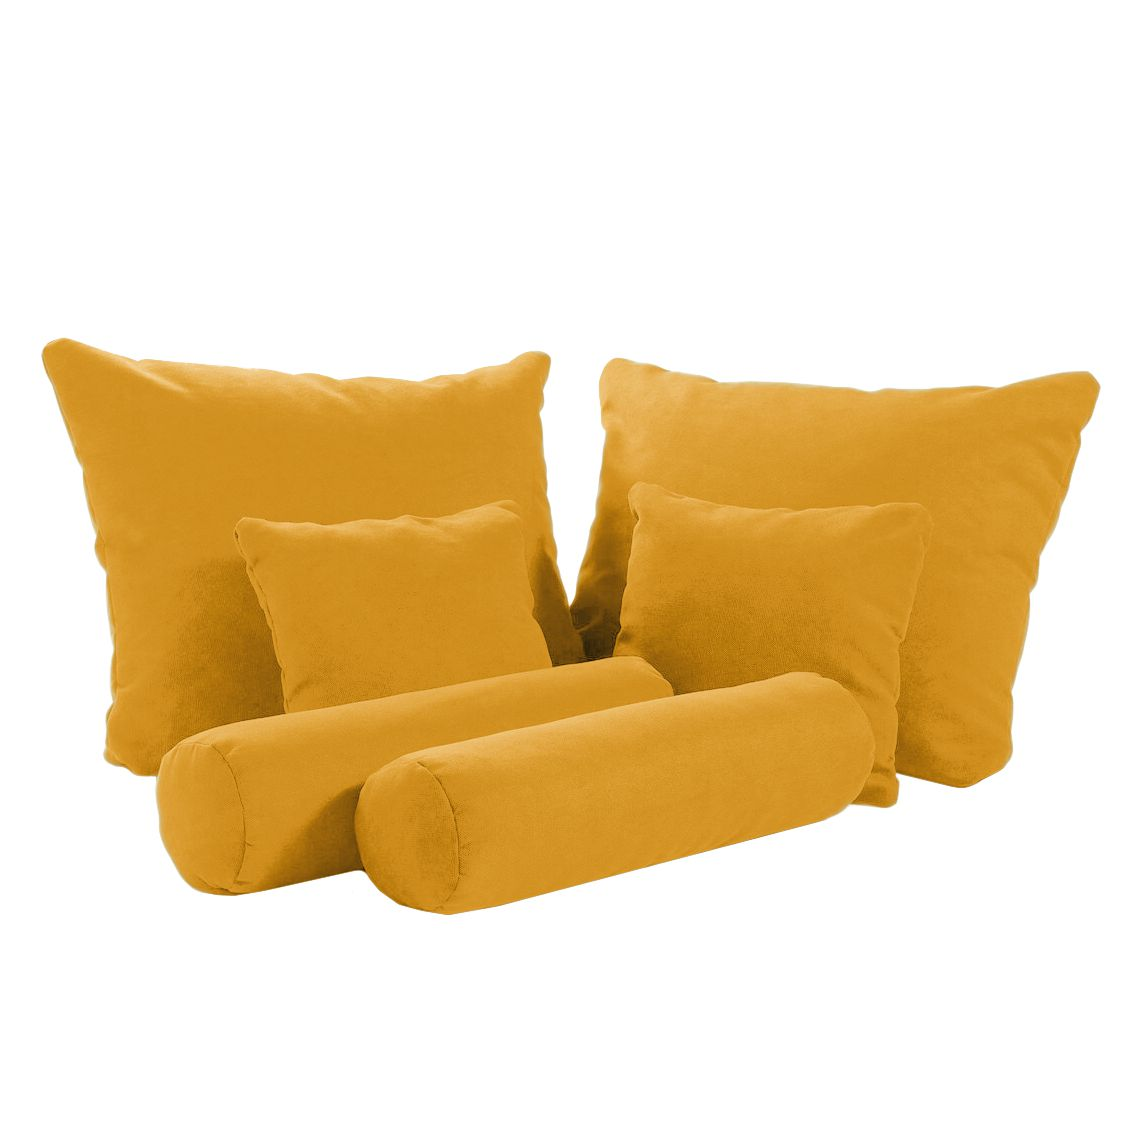 Home 24 - Coussin stamford welham (lot de 6) - microvelours - jaune moutarde, fredriks